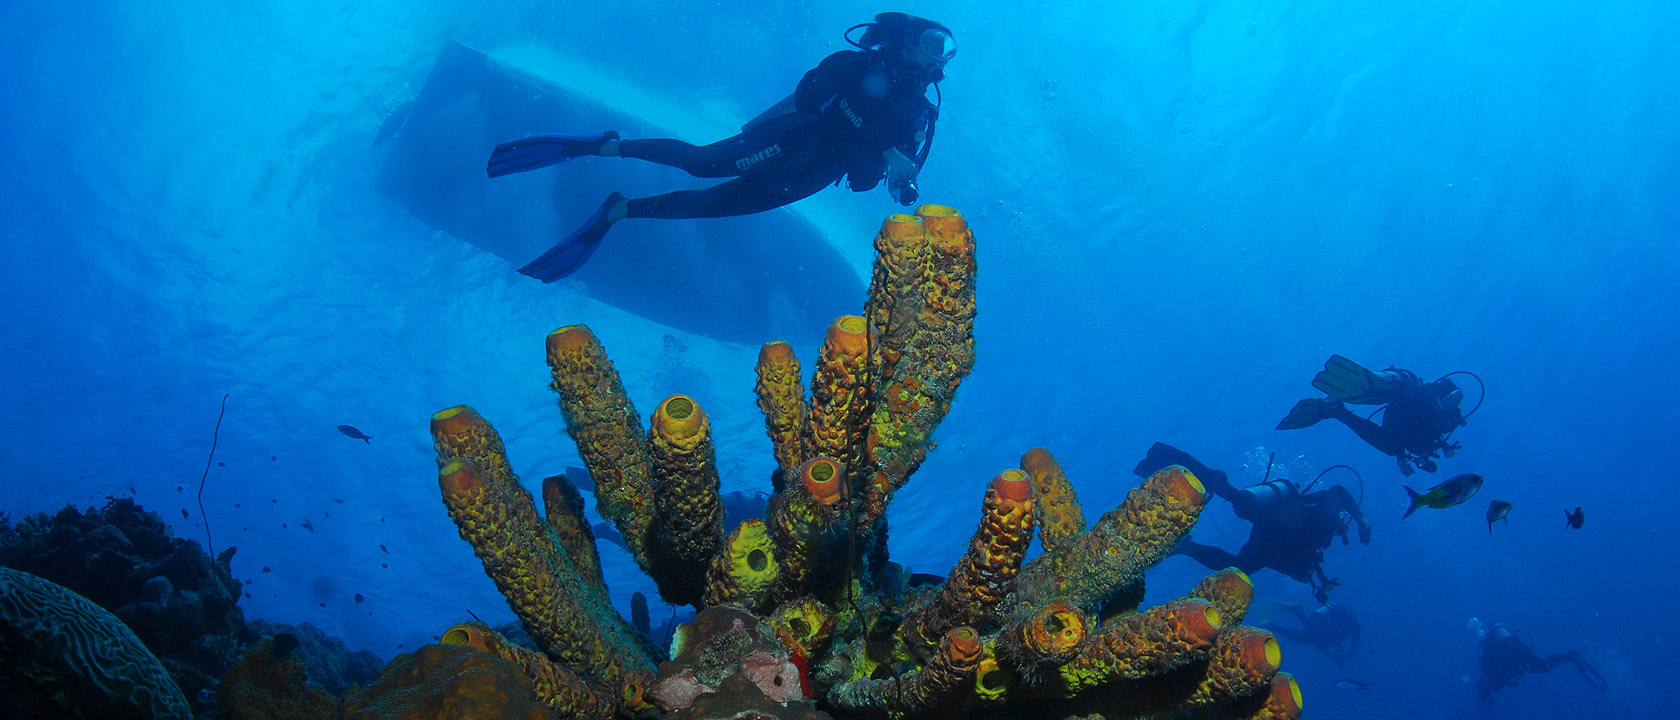 http://www.tourismbonaire.com/includes/images/diving/thumbs/Bonaire_Diving14thumb.jpg